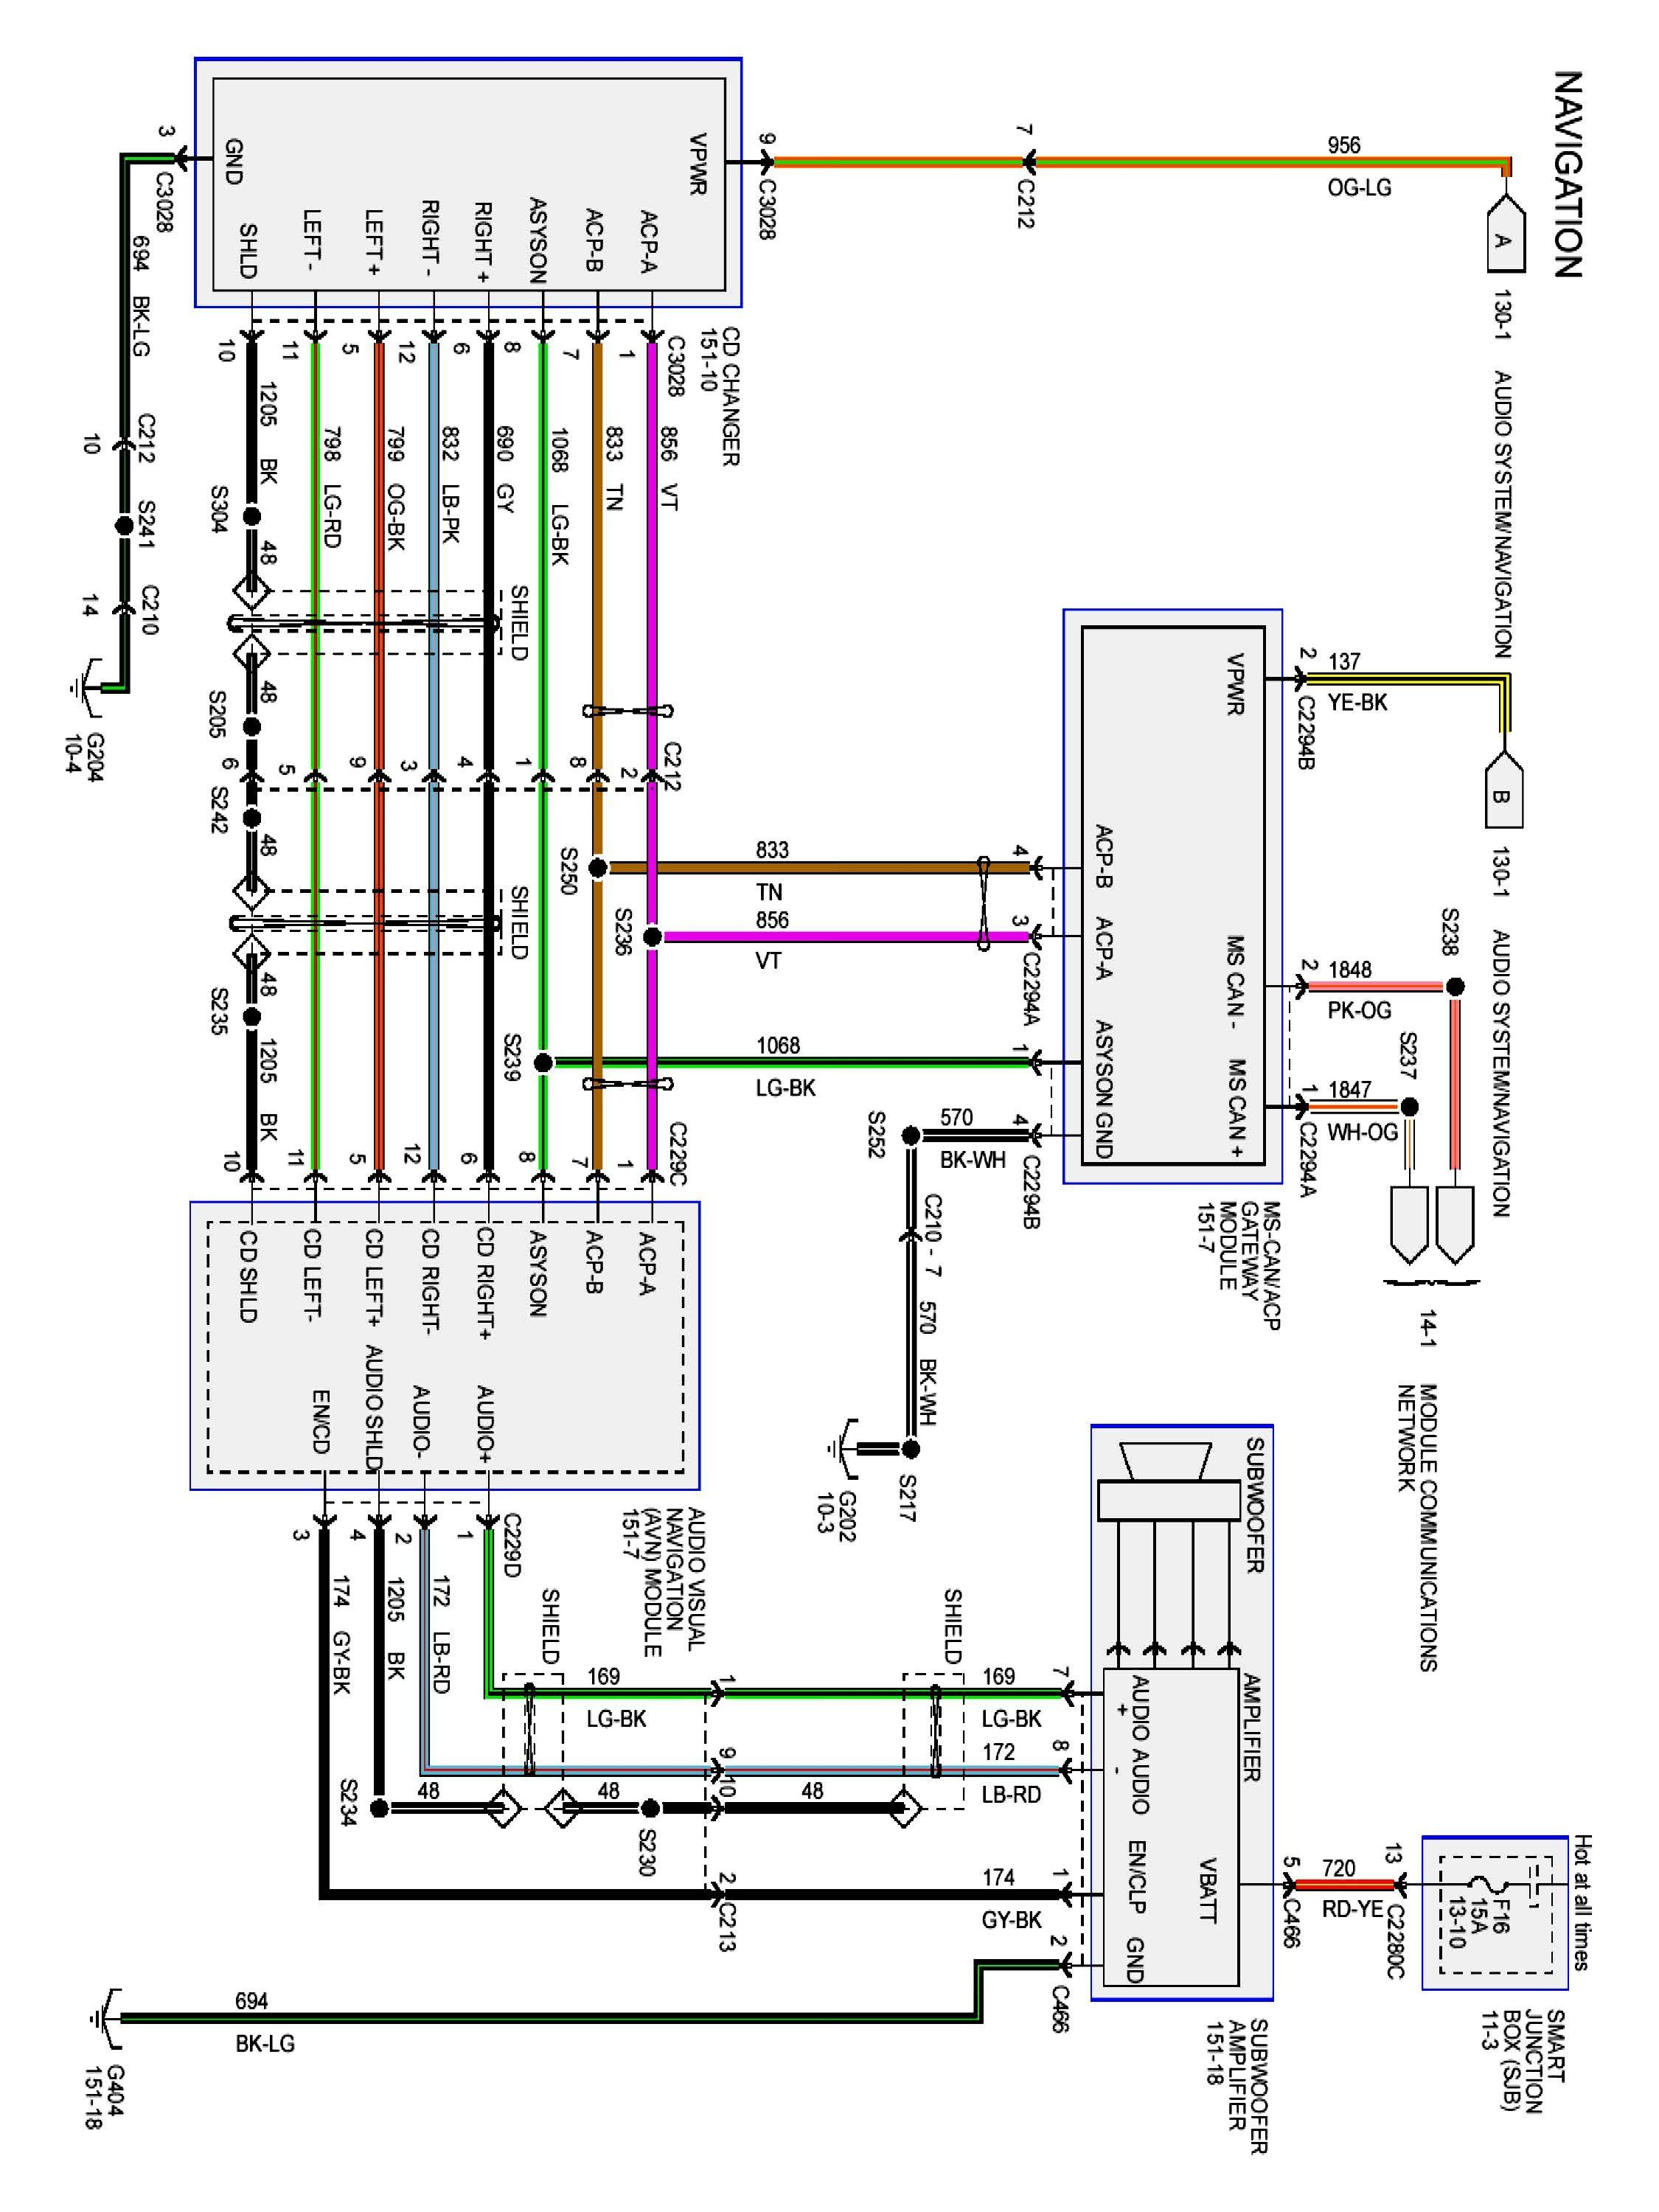 Toyota Jbl Amplifier Wiring Diagram Http Bookingritzcarlton Info Toyota Jbl Amplifier Wirin Ford Expedition Electrical Wiring Diagram Trailer Wiring Diagram